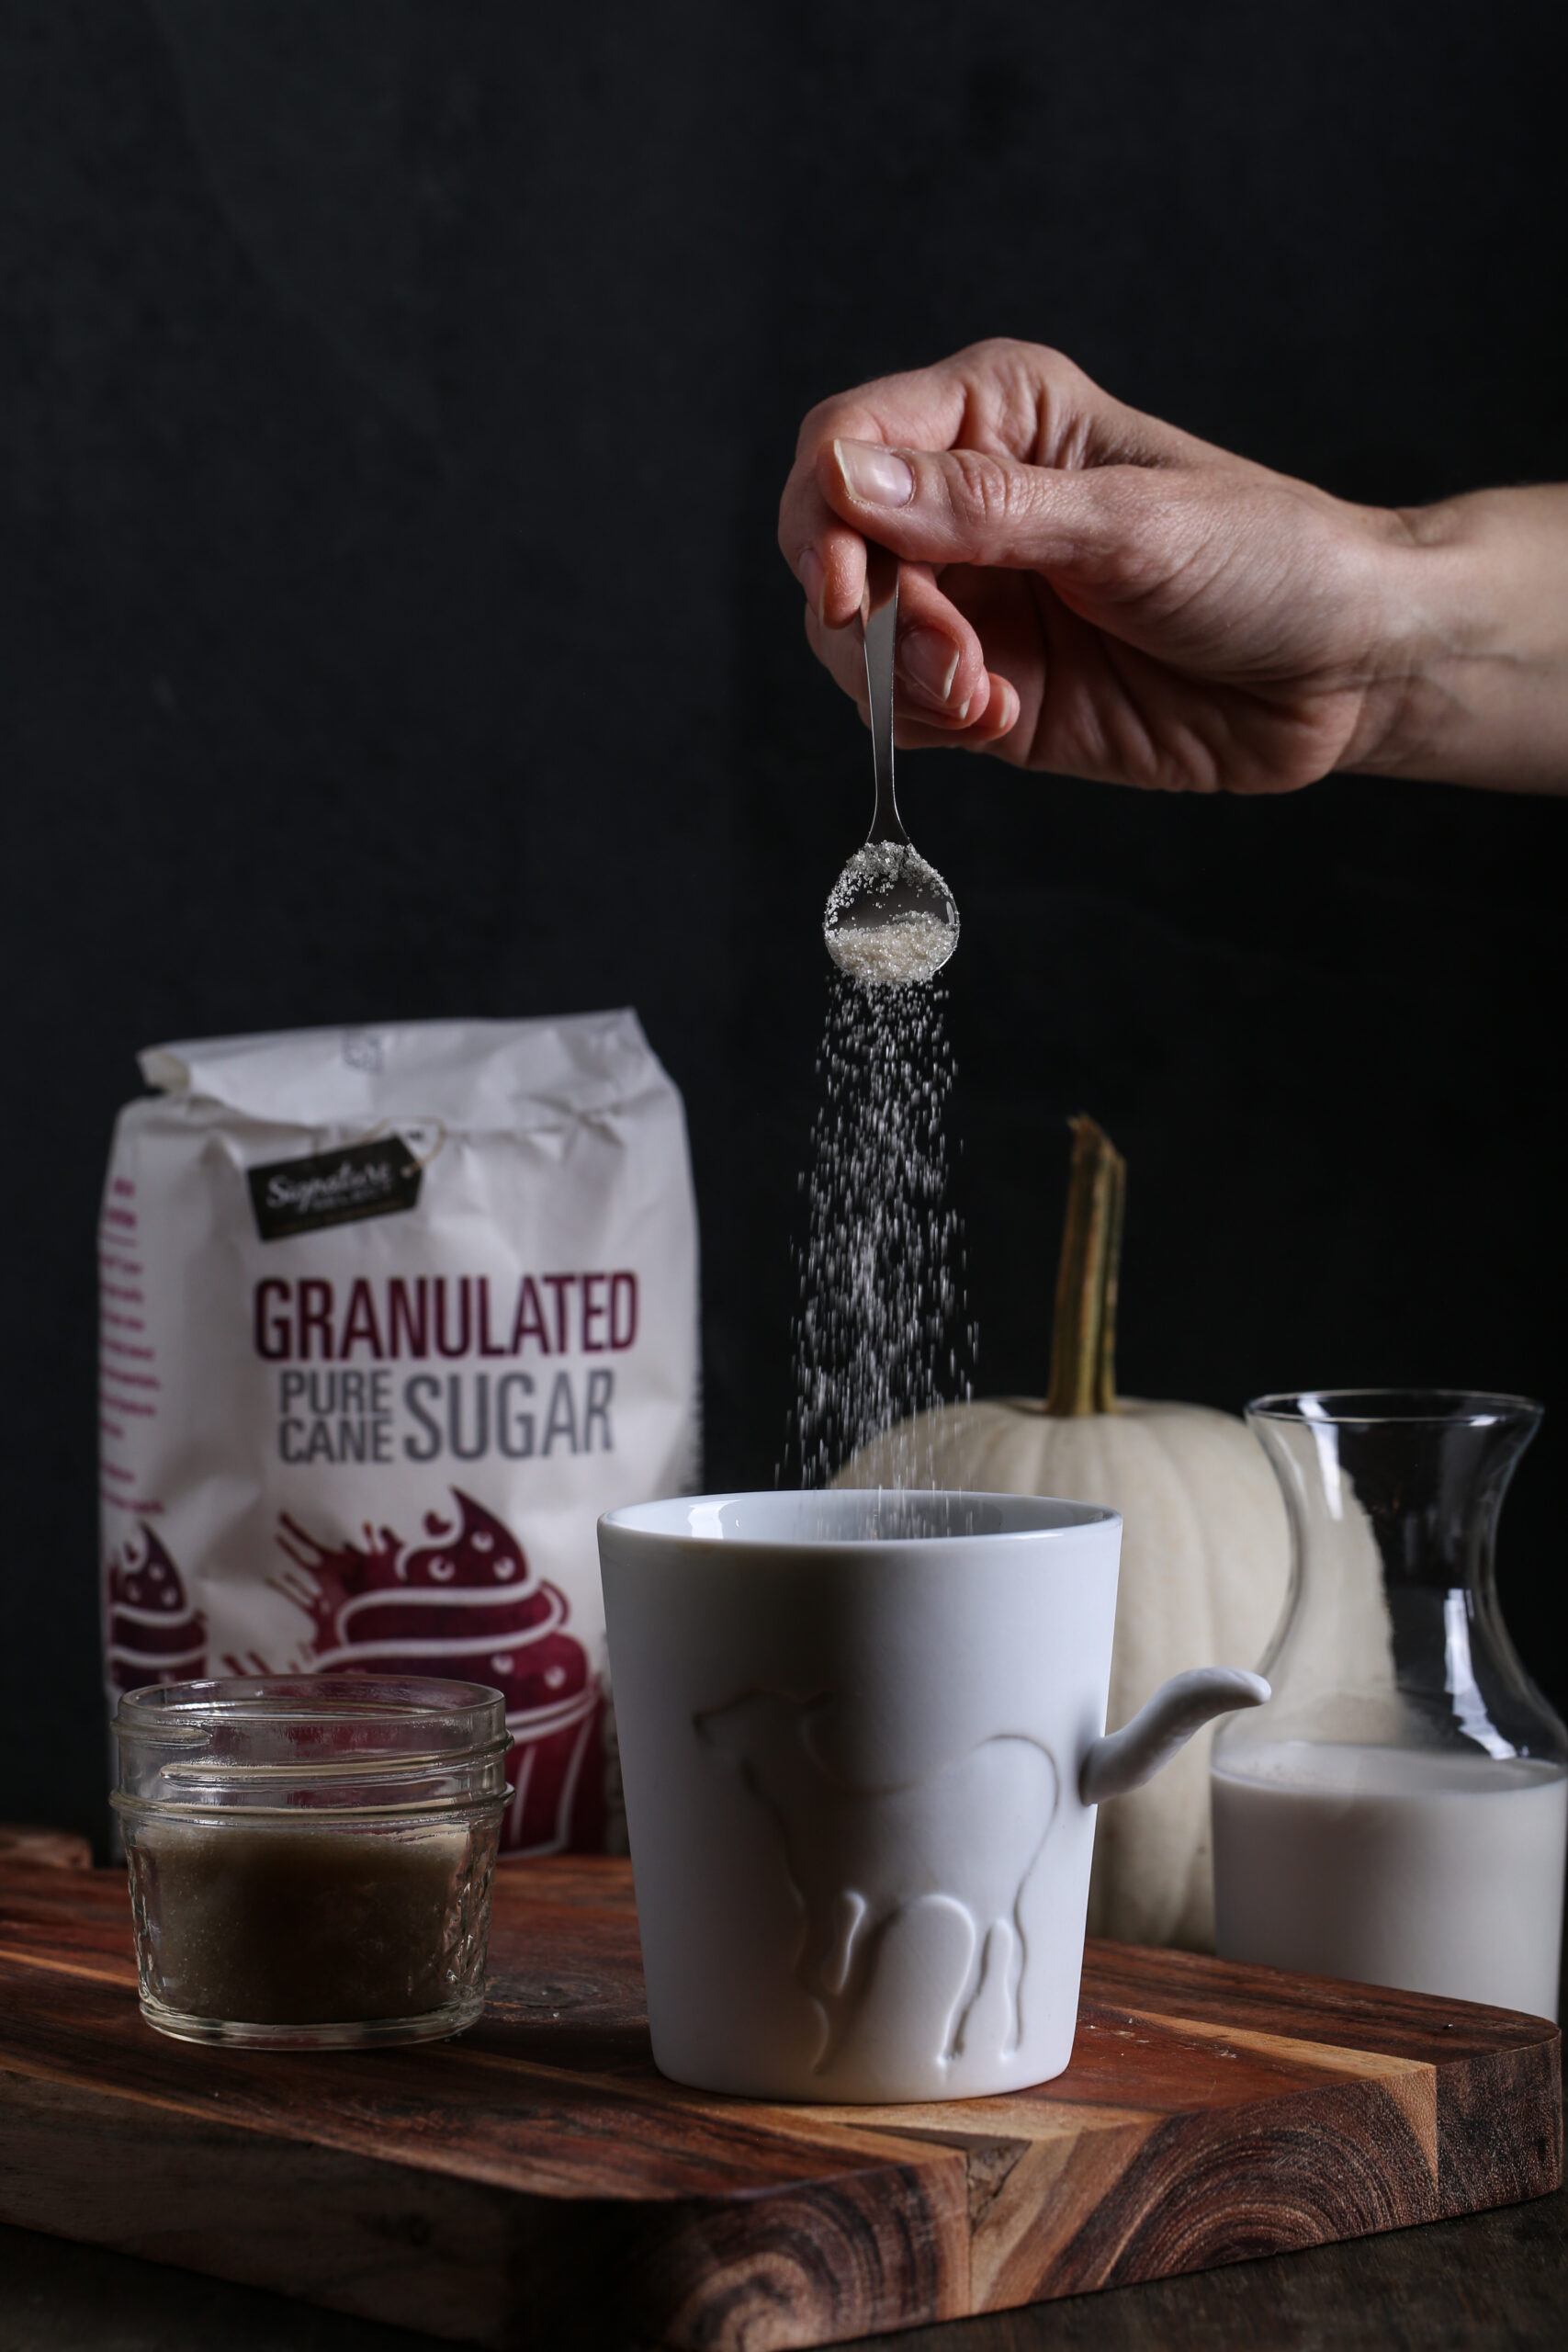 Sugar being added to a cup of coffee